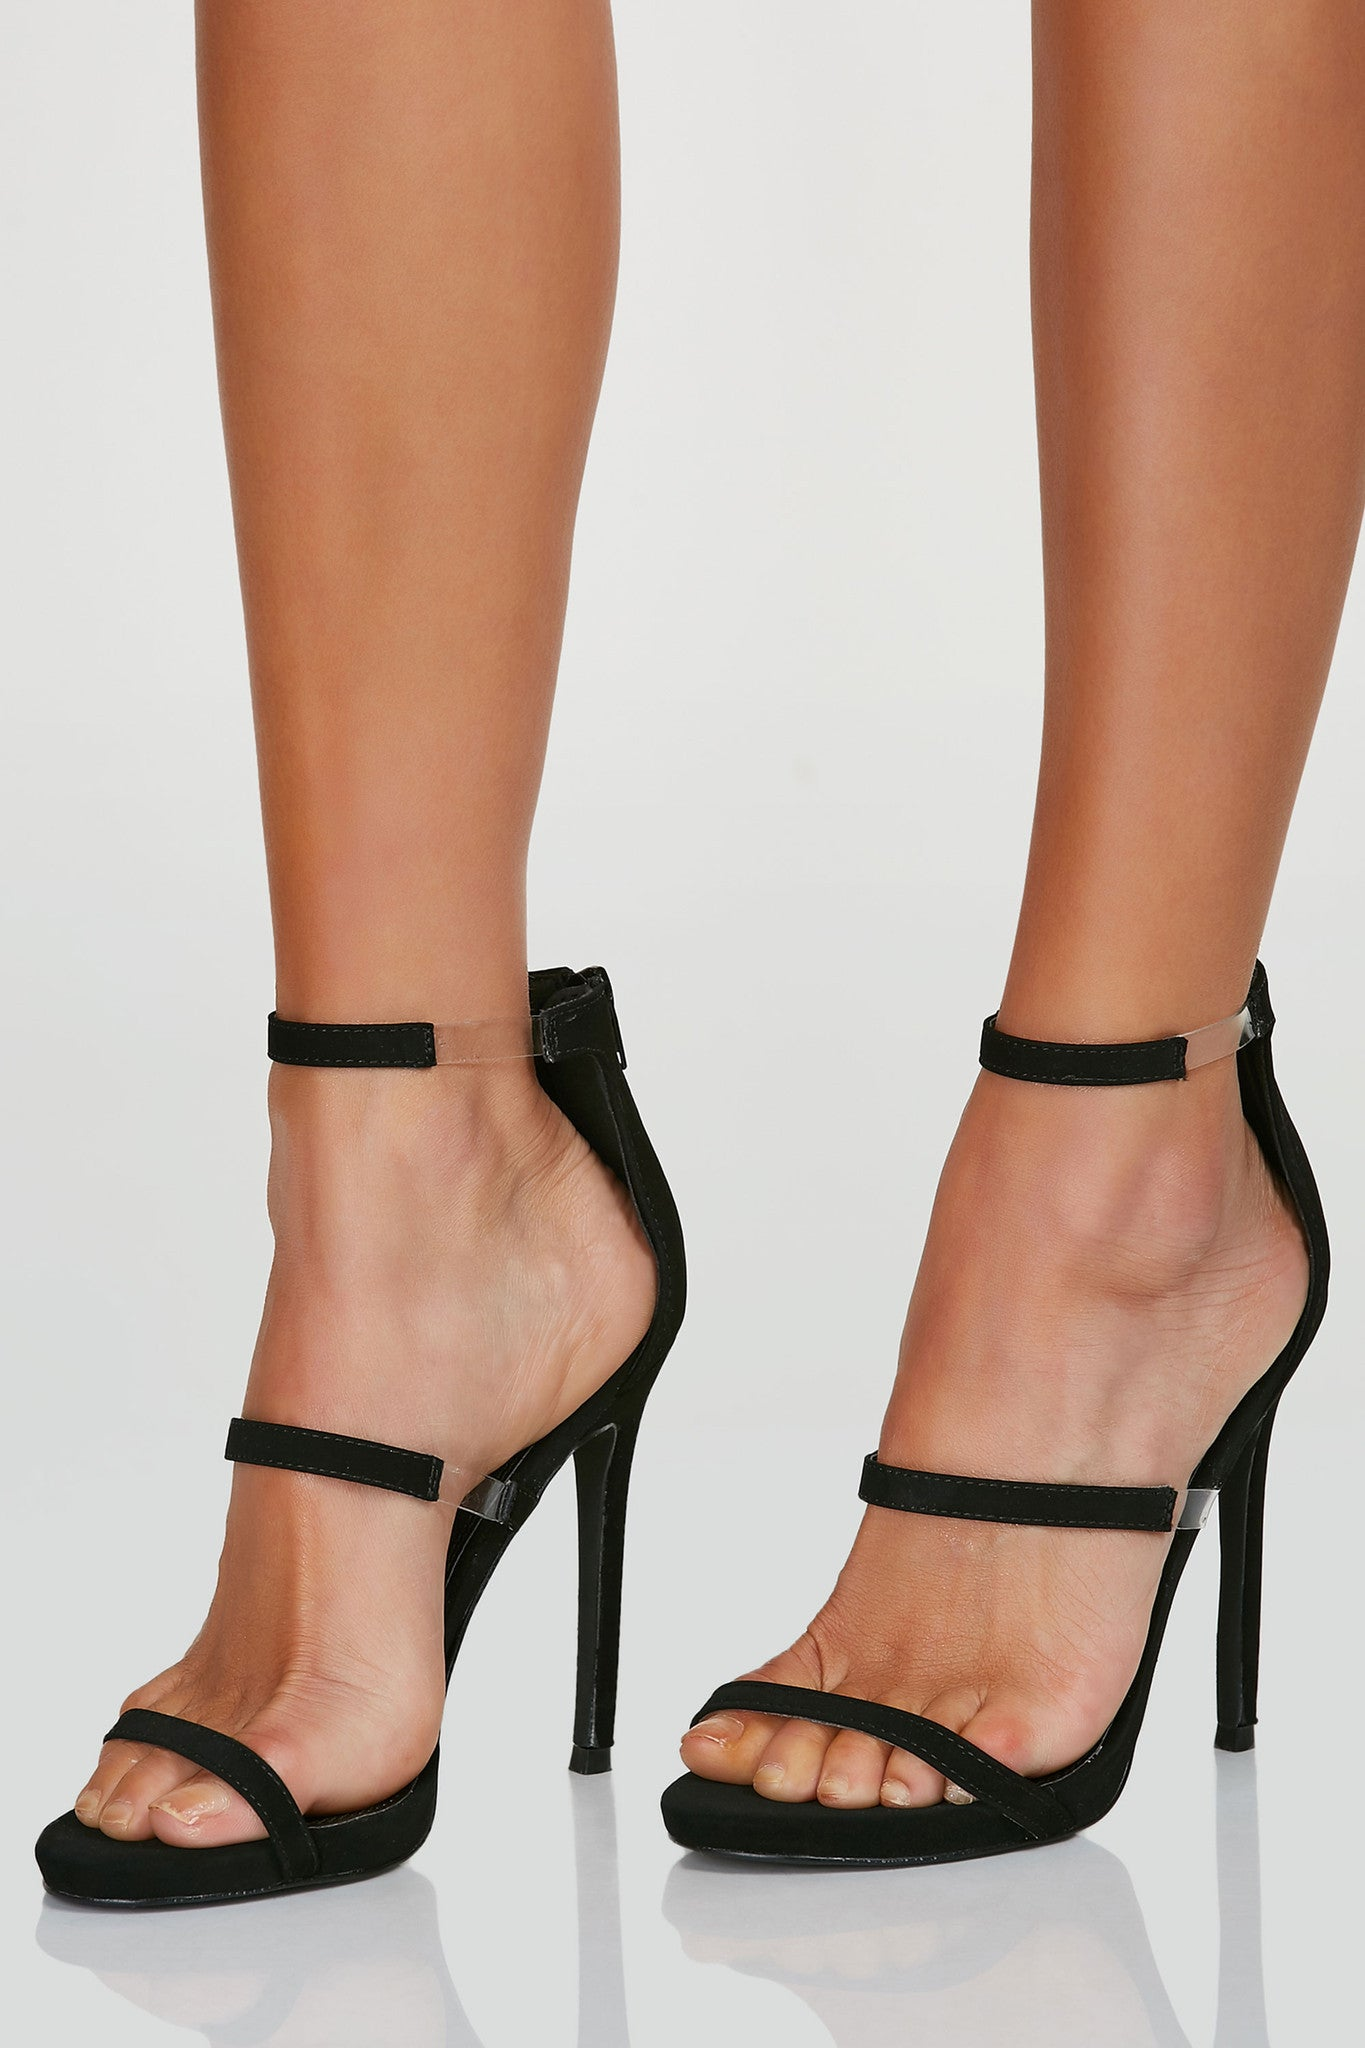 Sleek pair of three strap heels with contrast clear bands on each side. Back zip closure with slightly rounded toe finish.